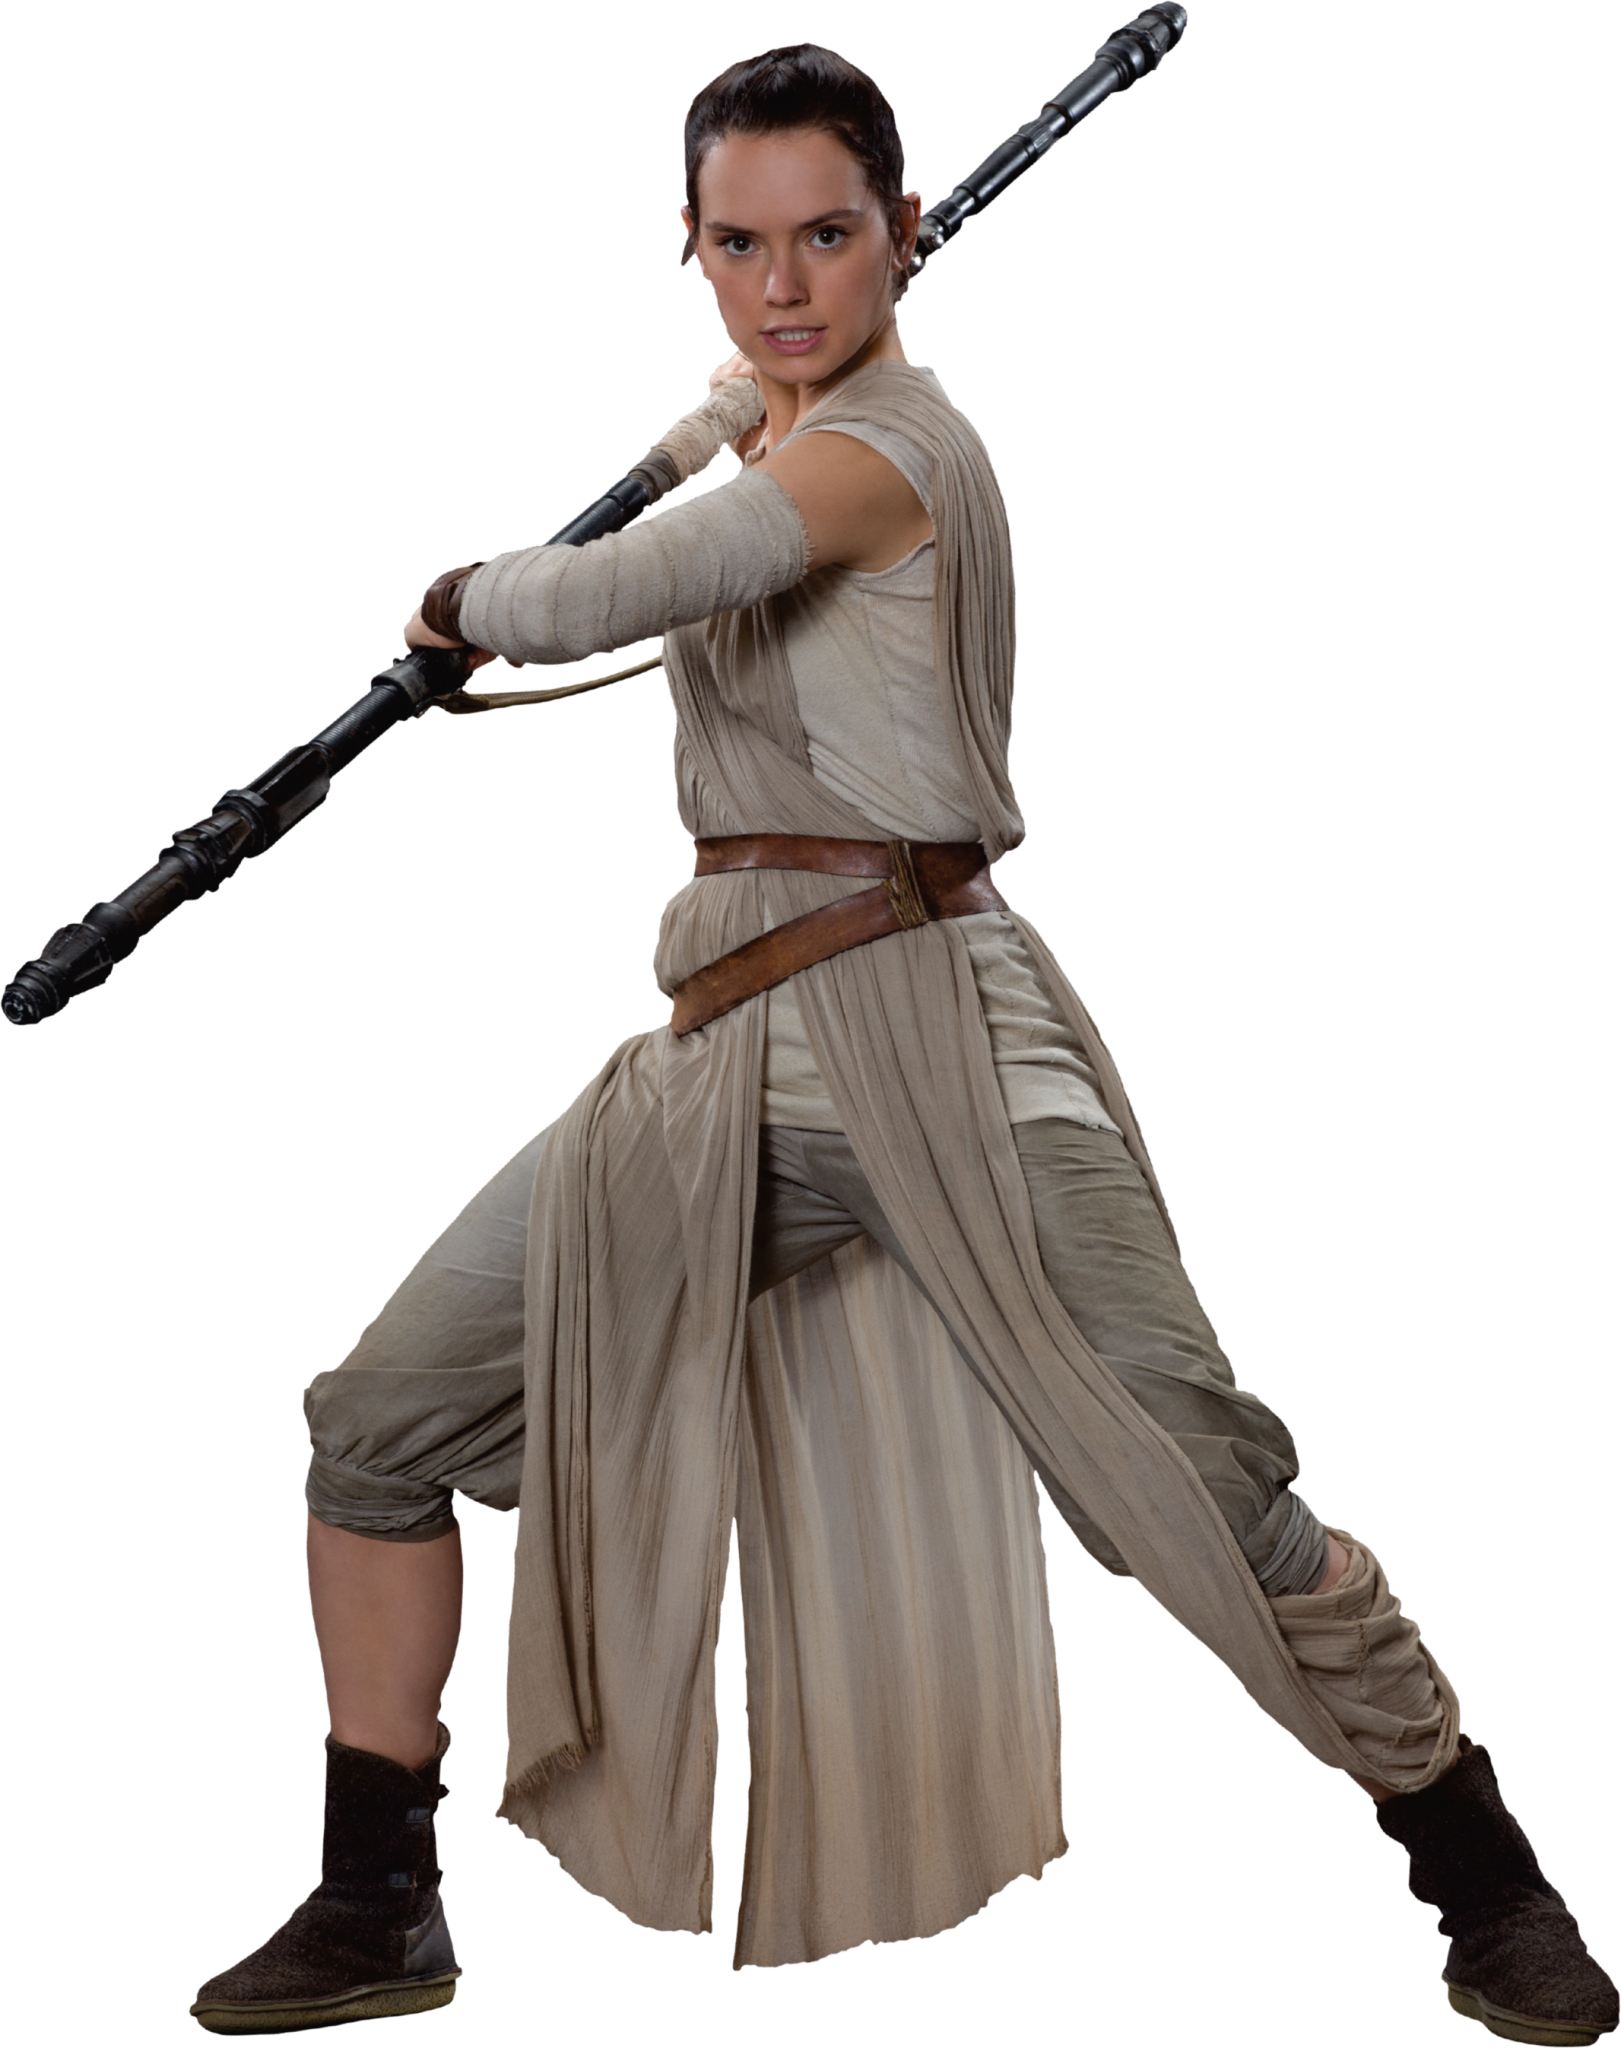 Star wars rey png pack. How to make an